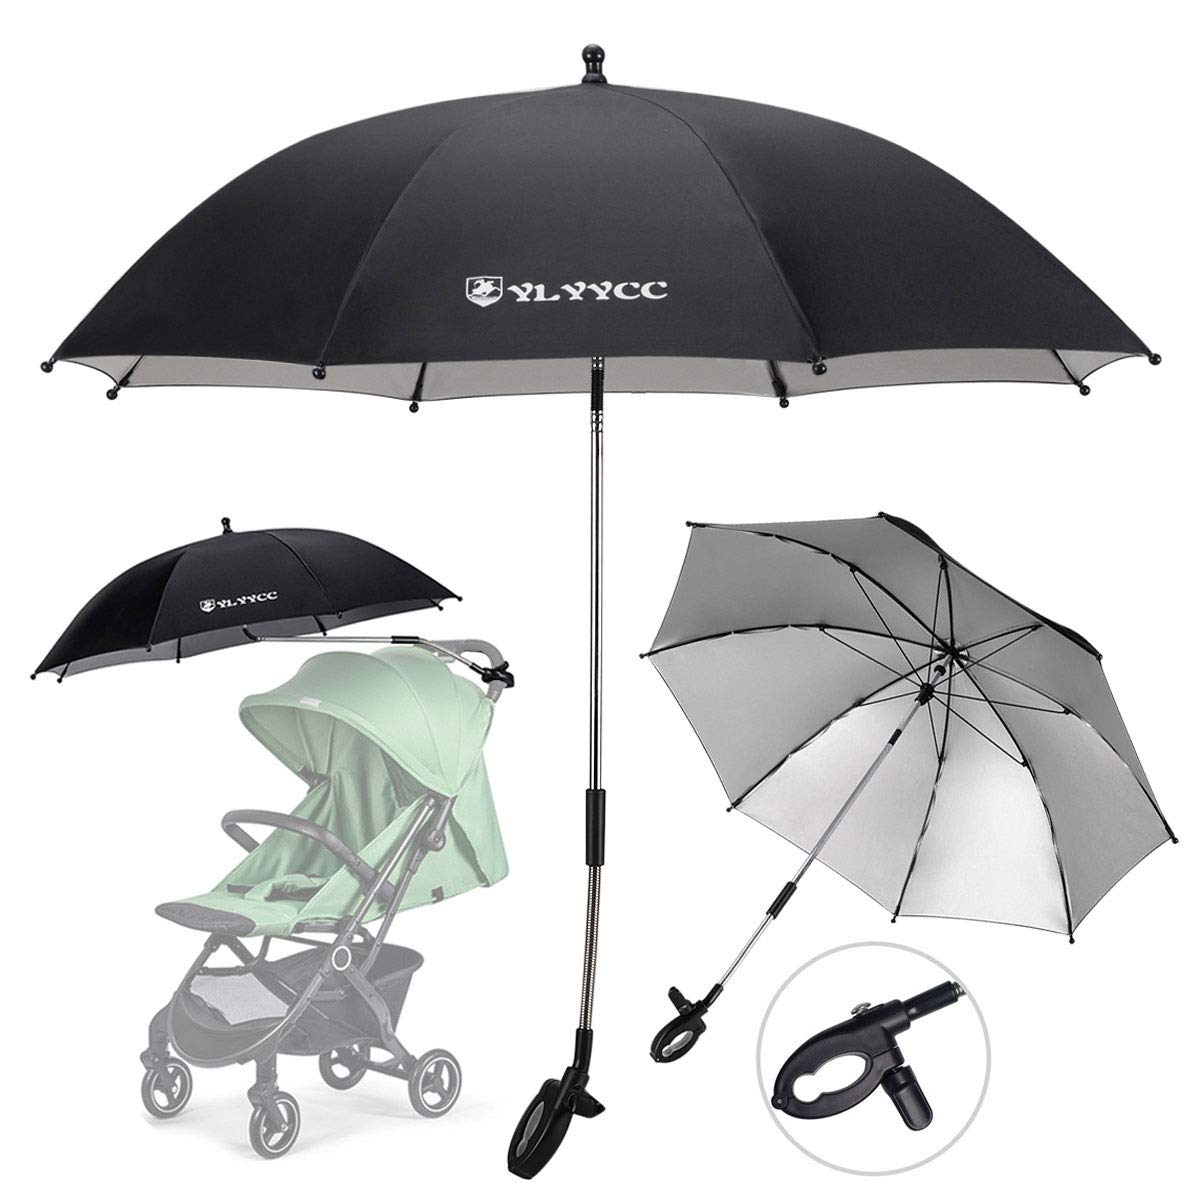 YLYYCC Baby Stroller Sun Shade/Stroller Umbrella/Uv Protection Umbrella 360 Degrees Adjustable Direction Stroller Accessories (Black-A) by YLYYCC